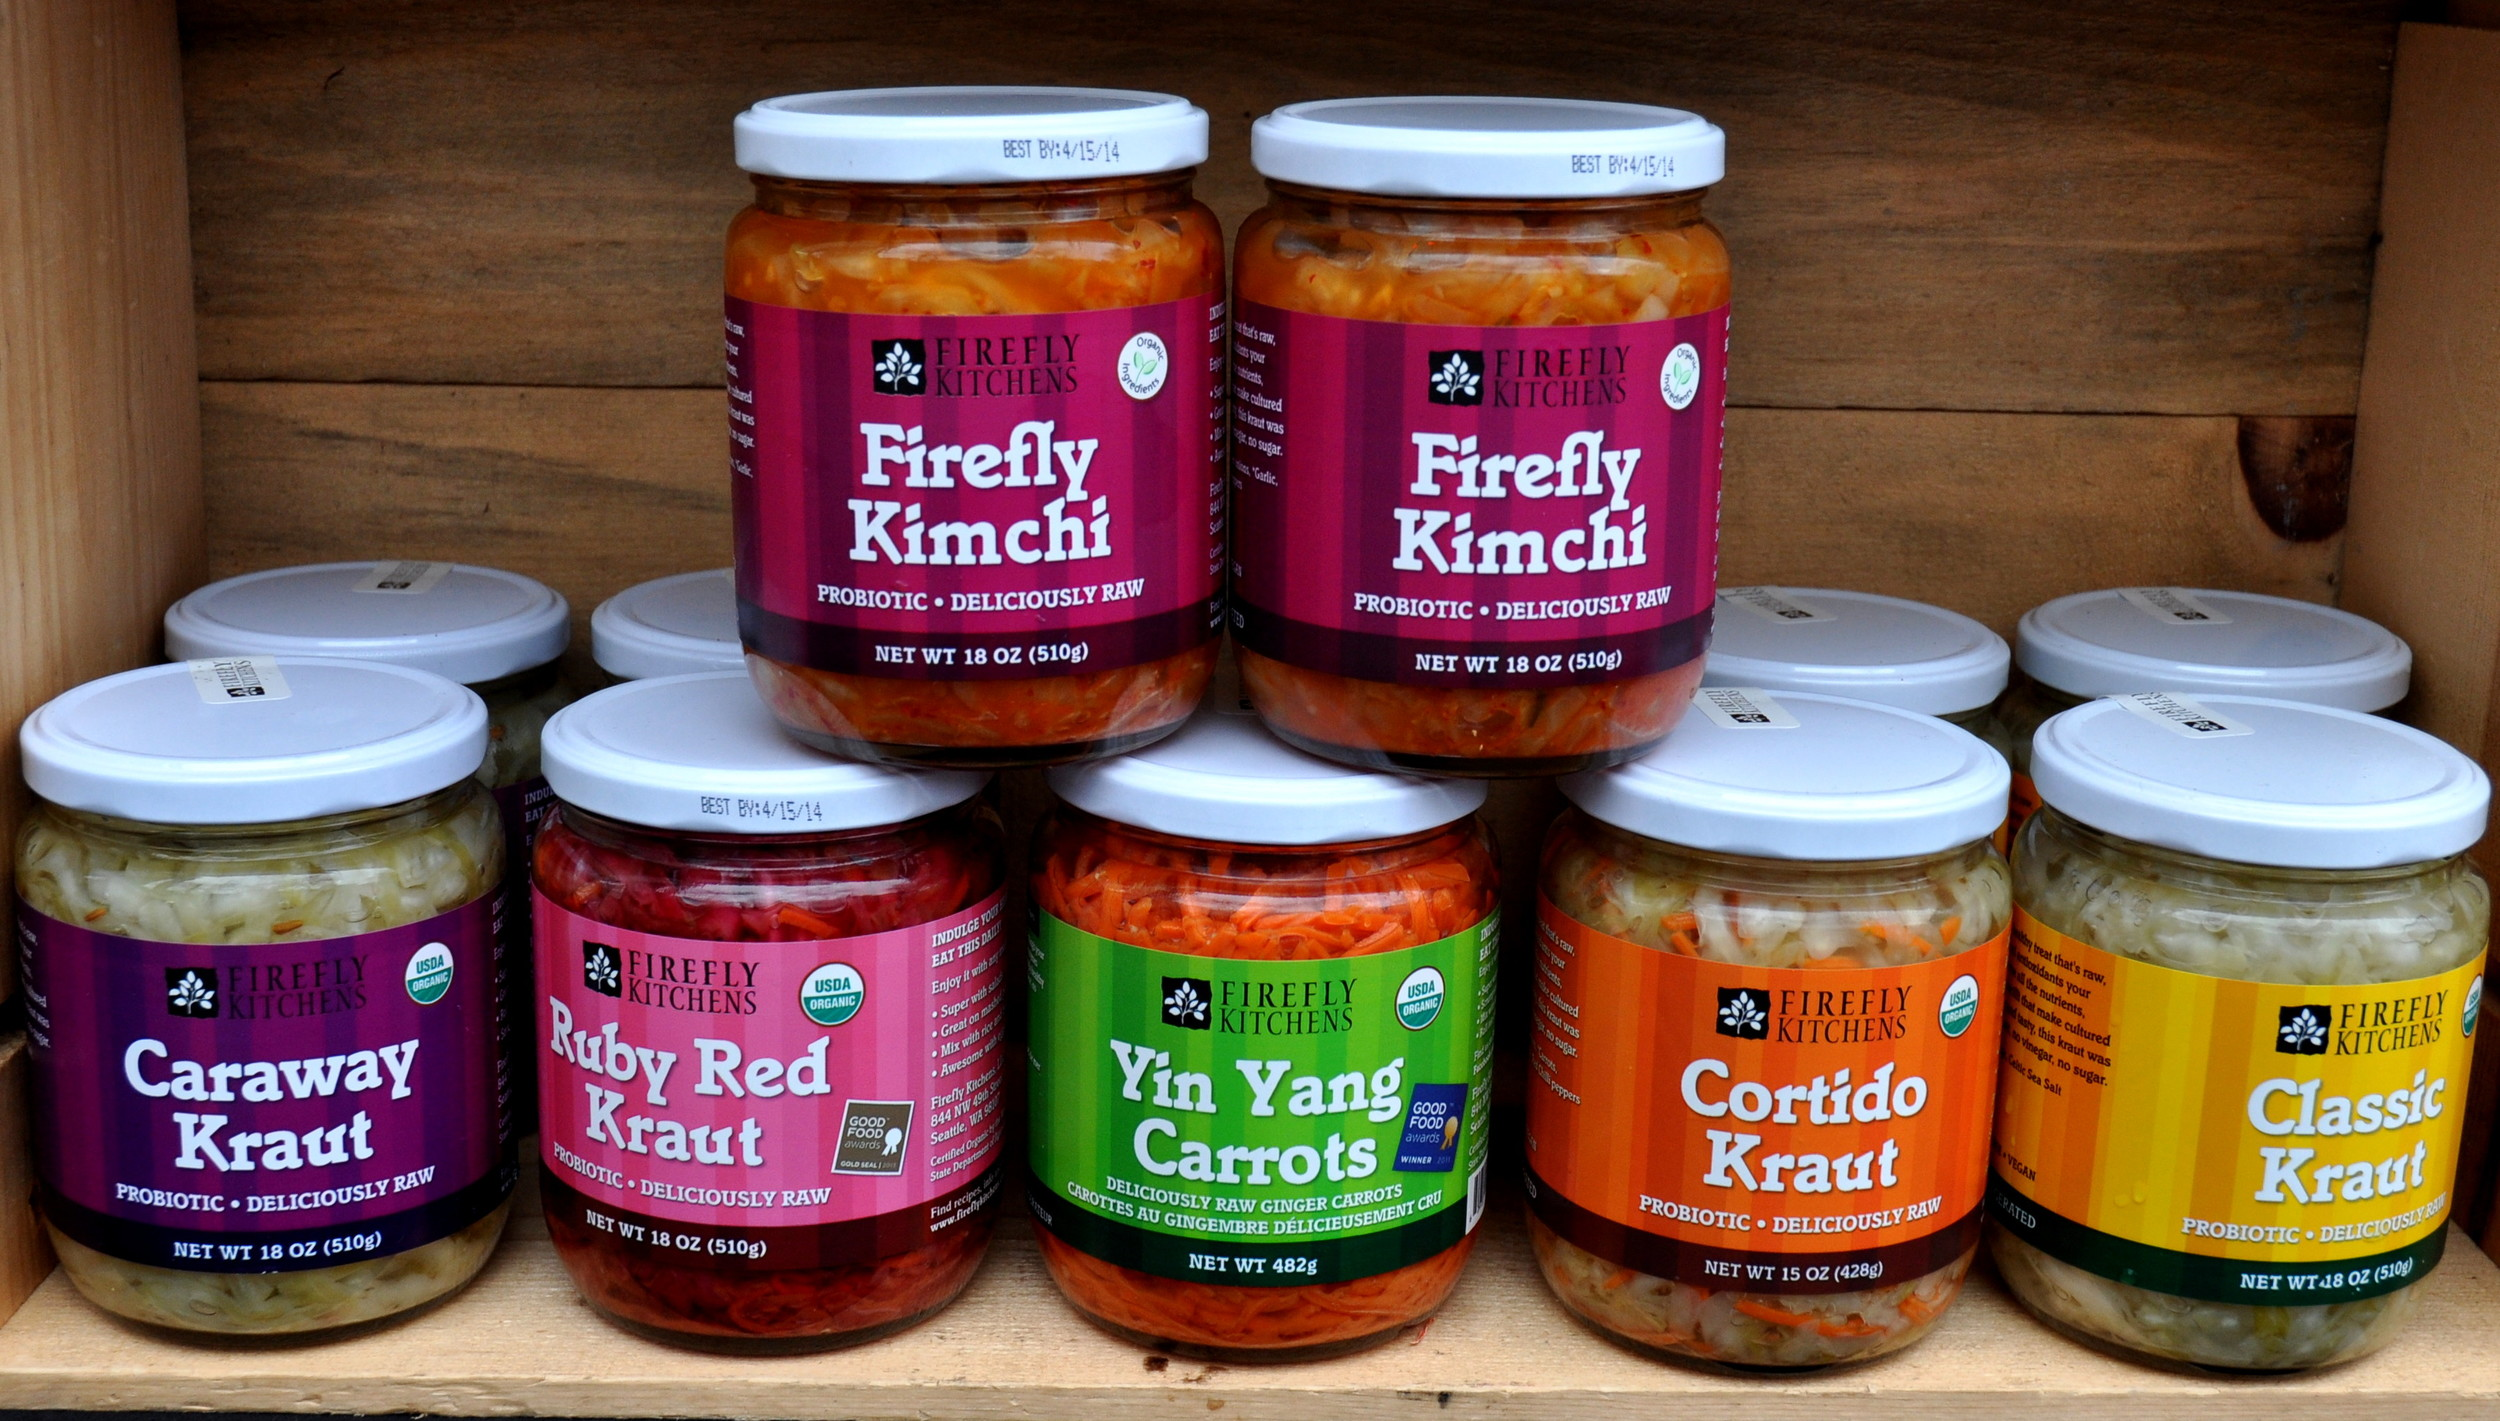 Kimchi, Krauts & more from Firefly Kitchens at Ballard Farmers Market. Copyright Zachary D. Lyons.